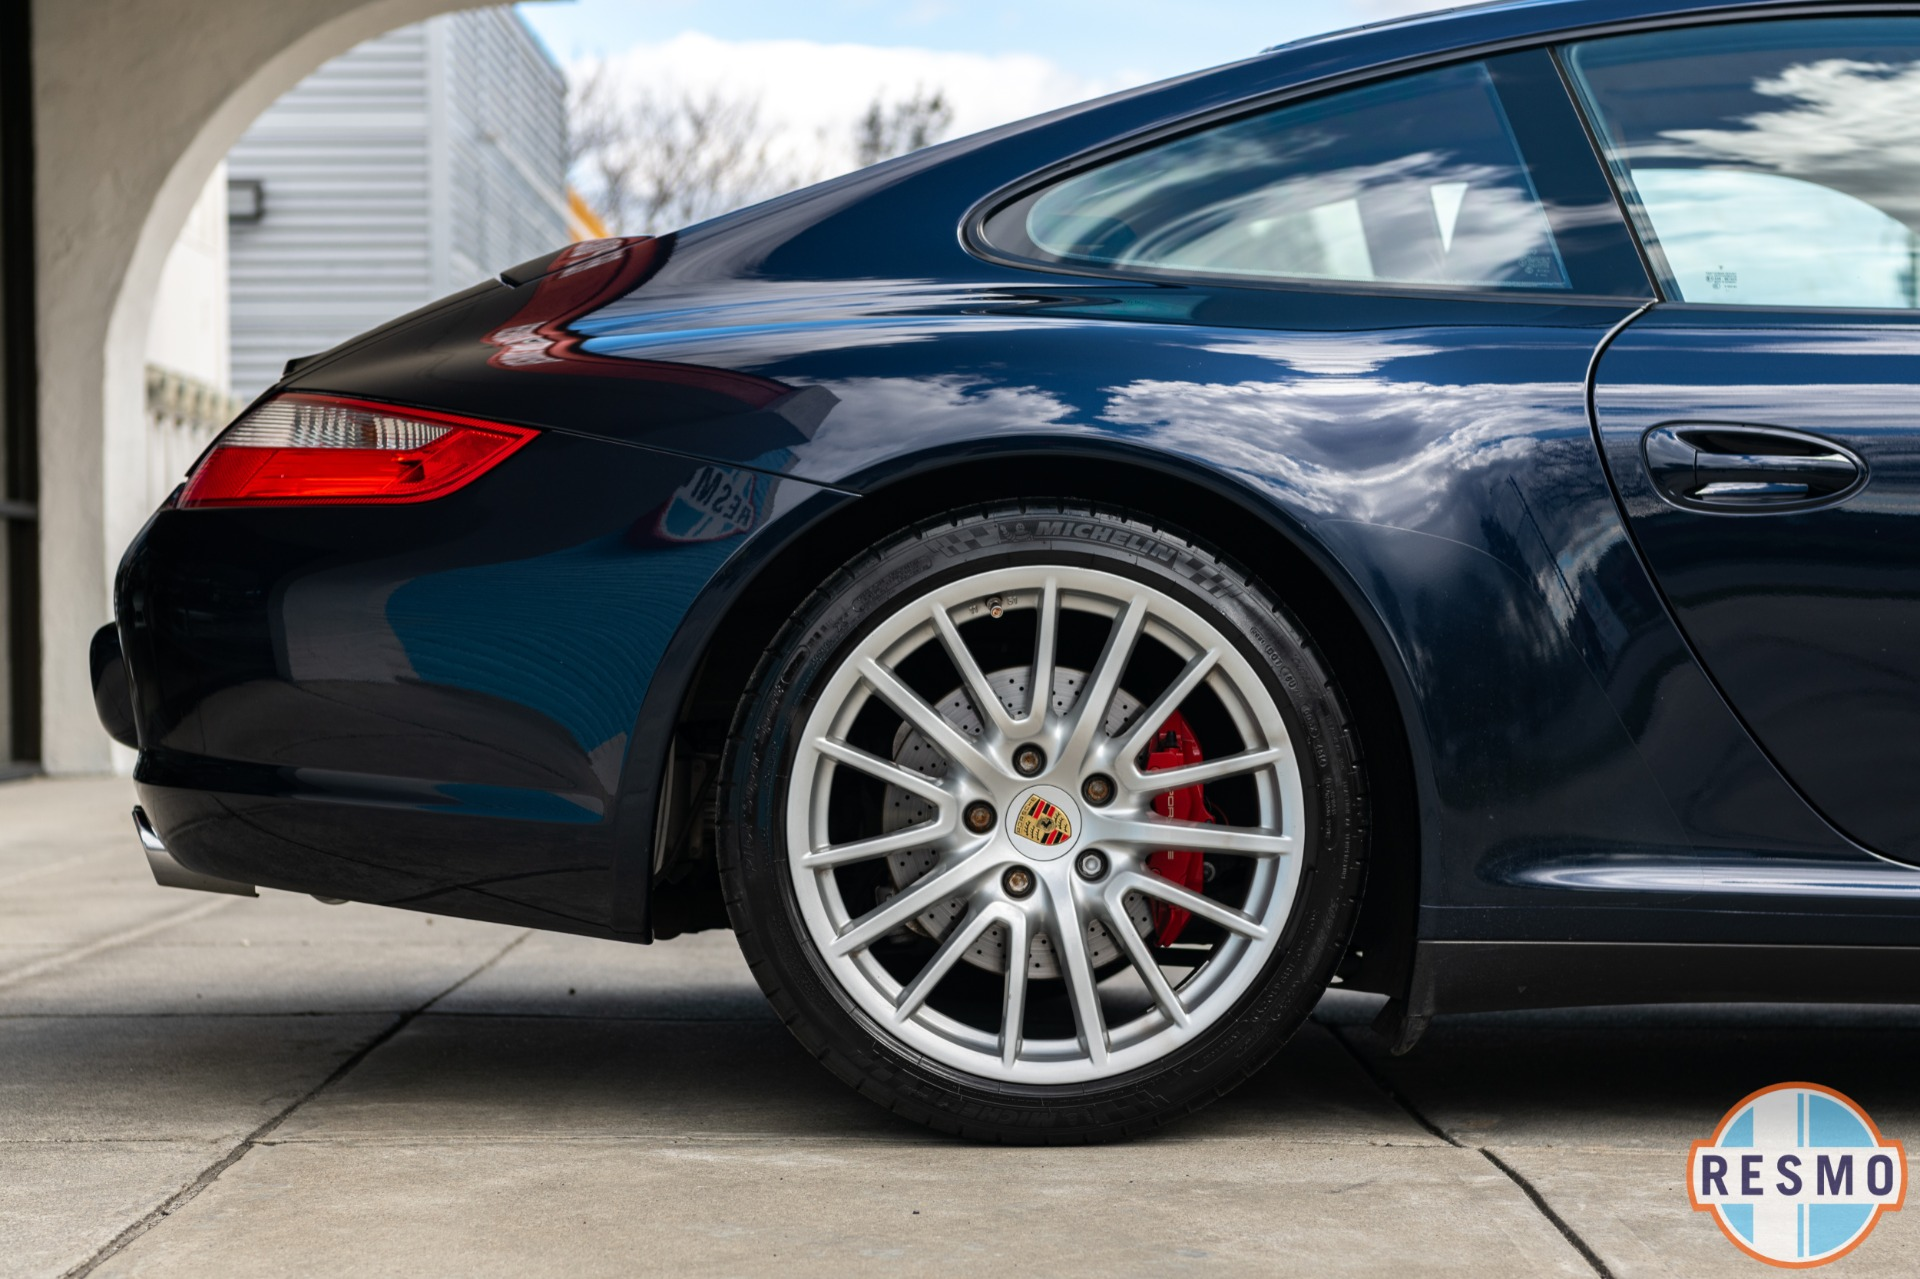 Used 2008 Porsche 911 Carrera 4S Used 2008 Porsche 911 Carrera 4S for sale $41,999 at Response Motors in Mountain View CA 5